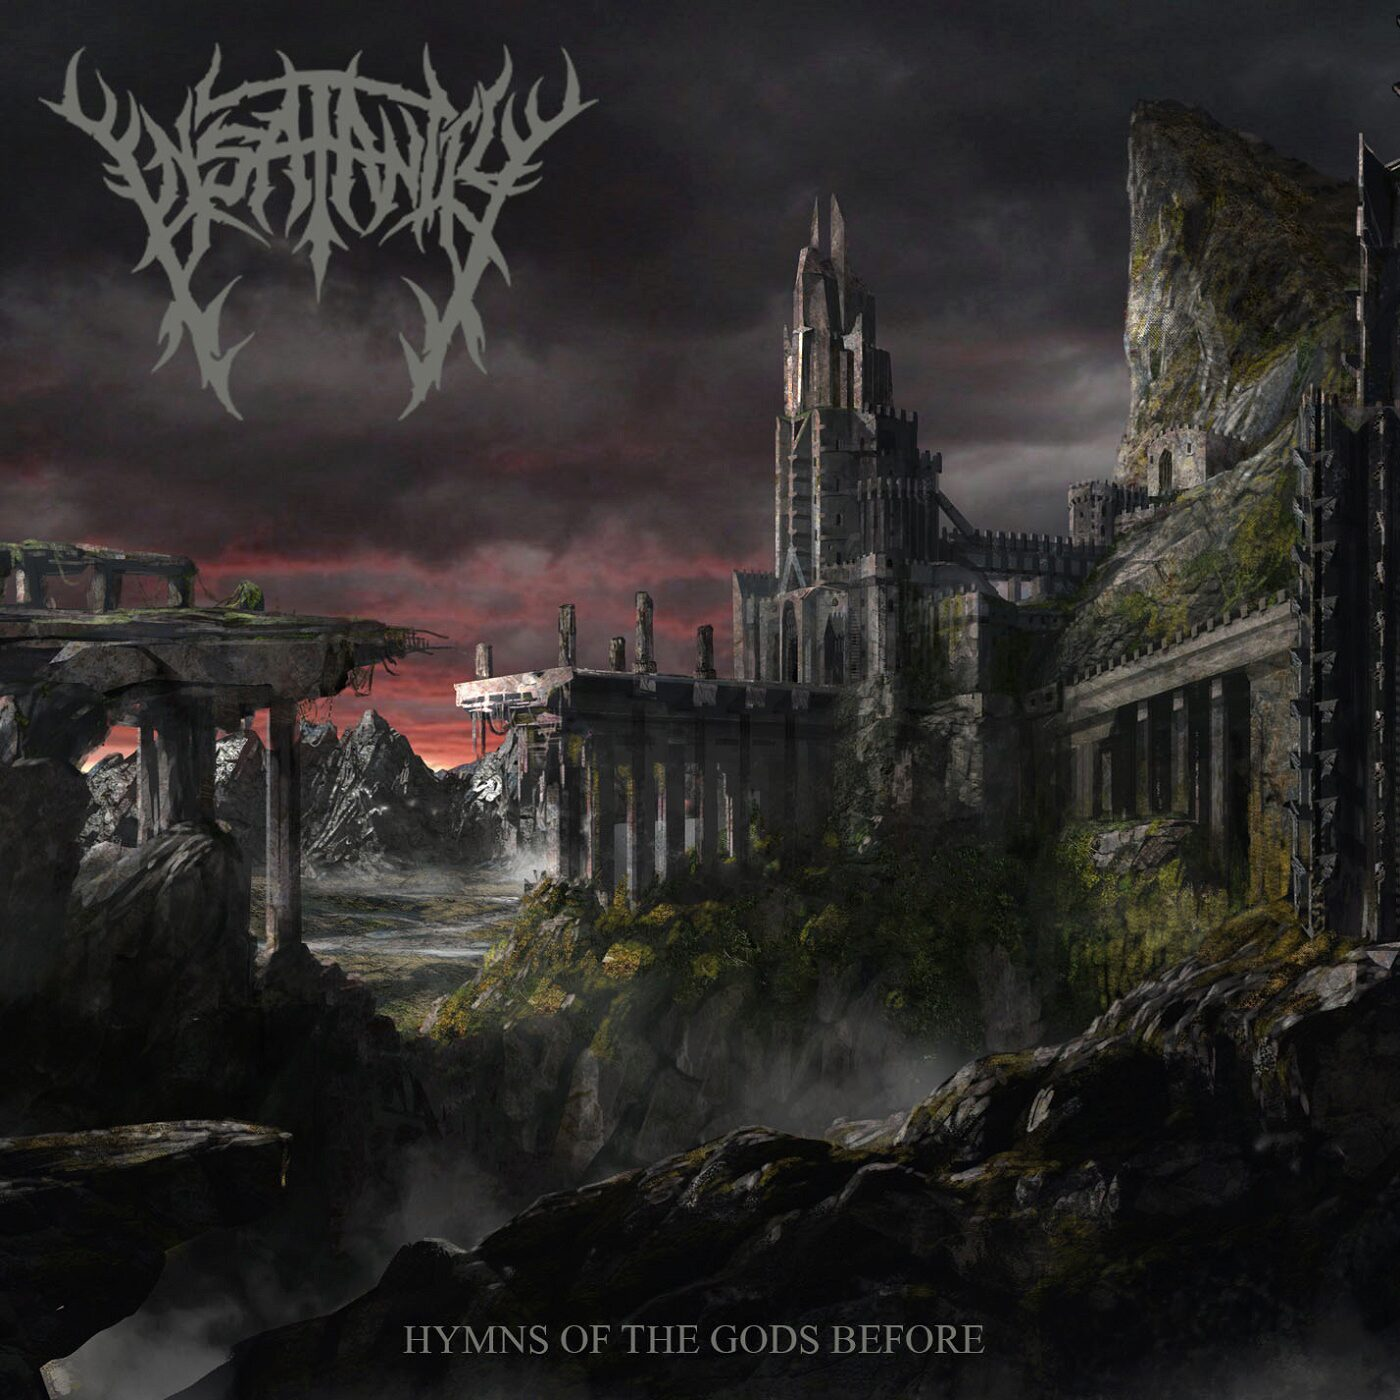 Album art for Hymns of the Gods Before by Insatanity